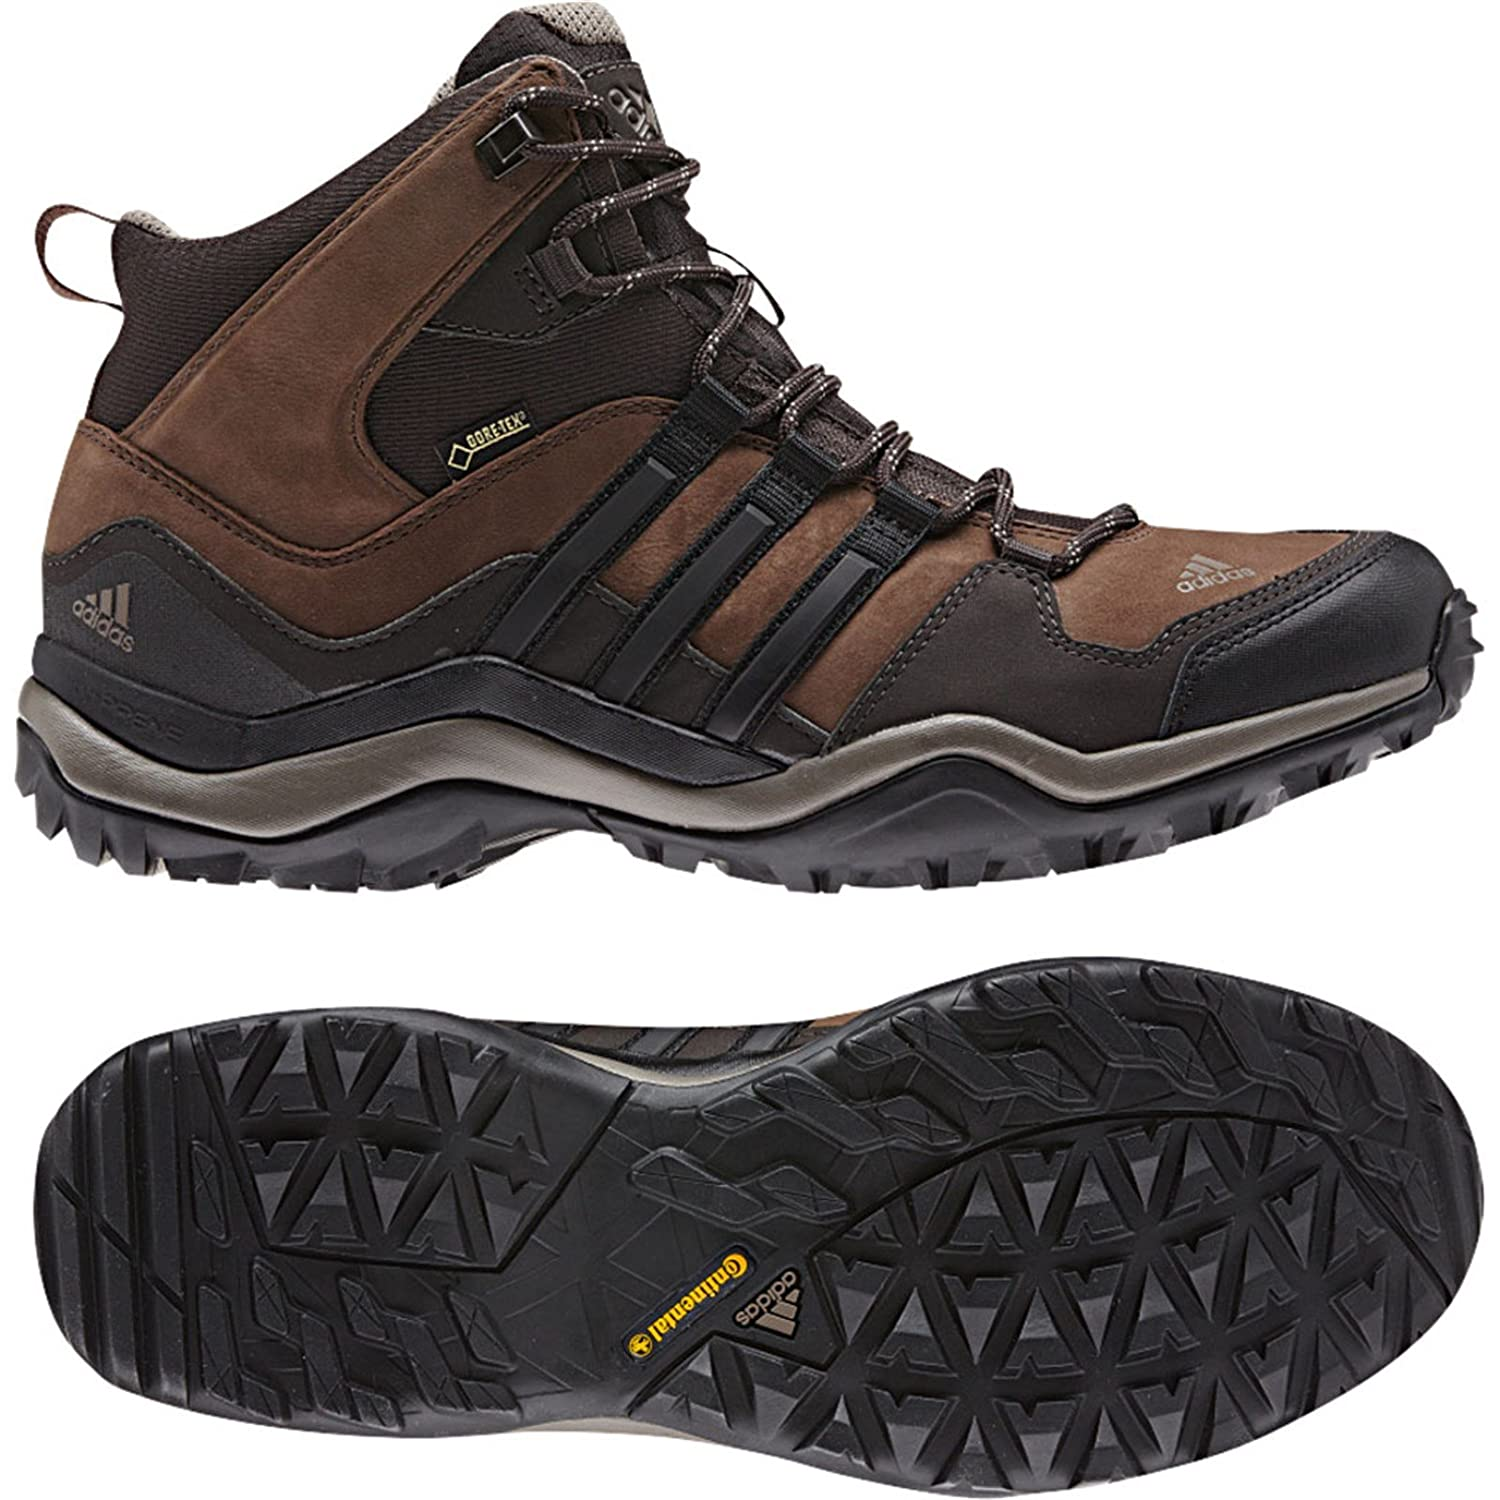 Adidas Kumacross Mid GTX Leather Boot - Men's Espresso / Black / Dark Brown 9